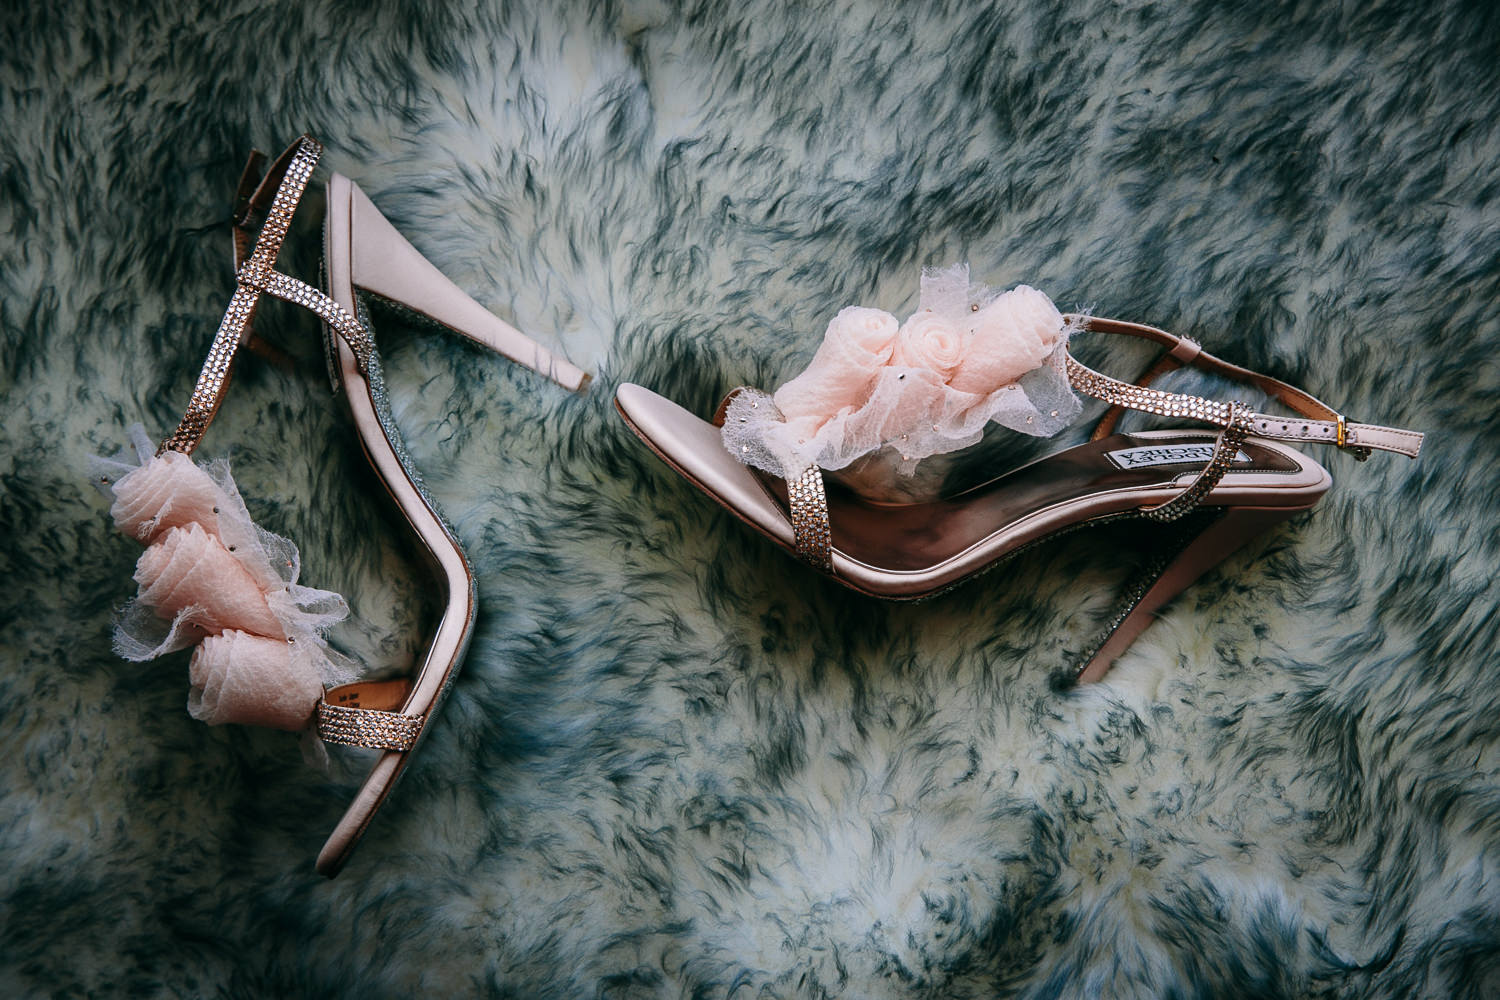 Malibu Rocky Oaks Photographer - Brides Accessories